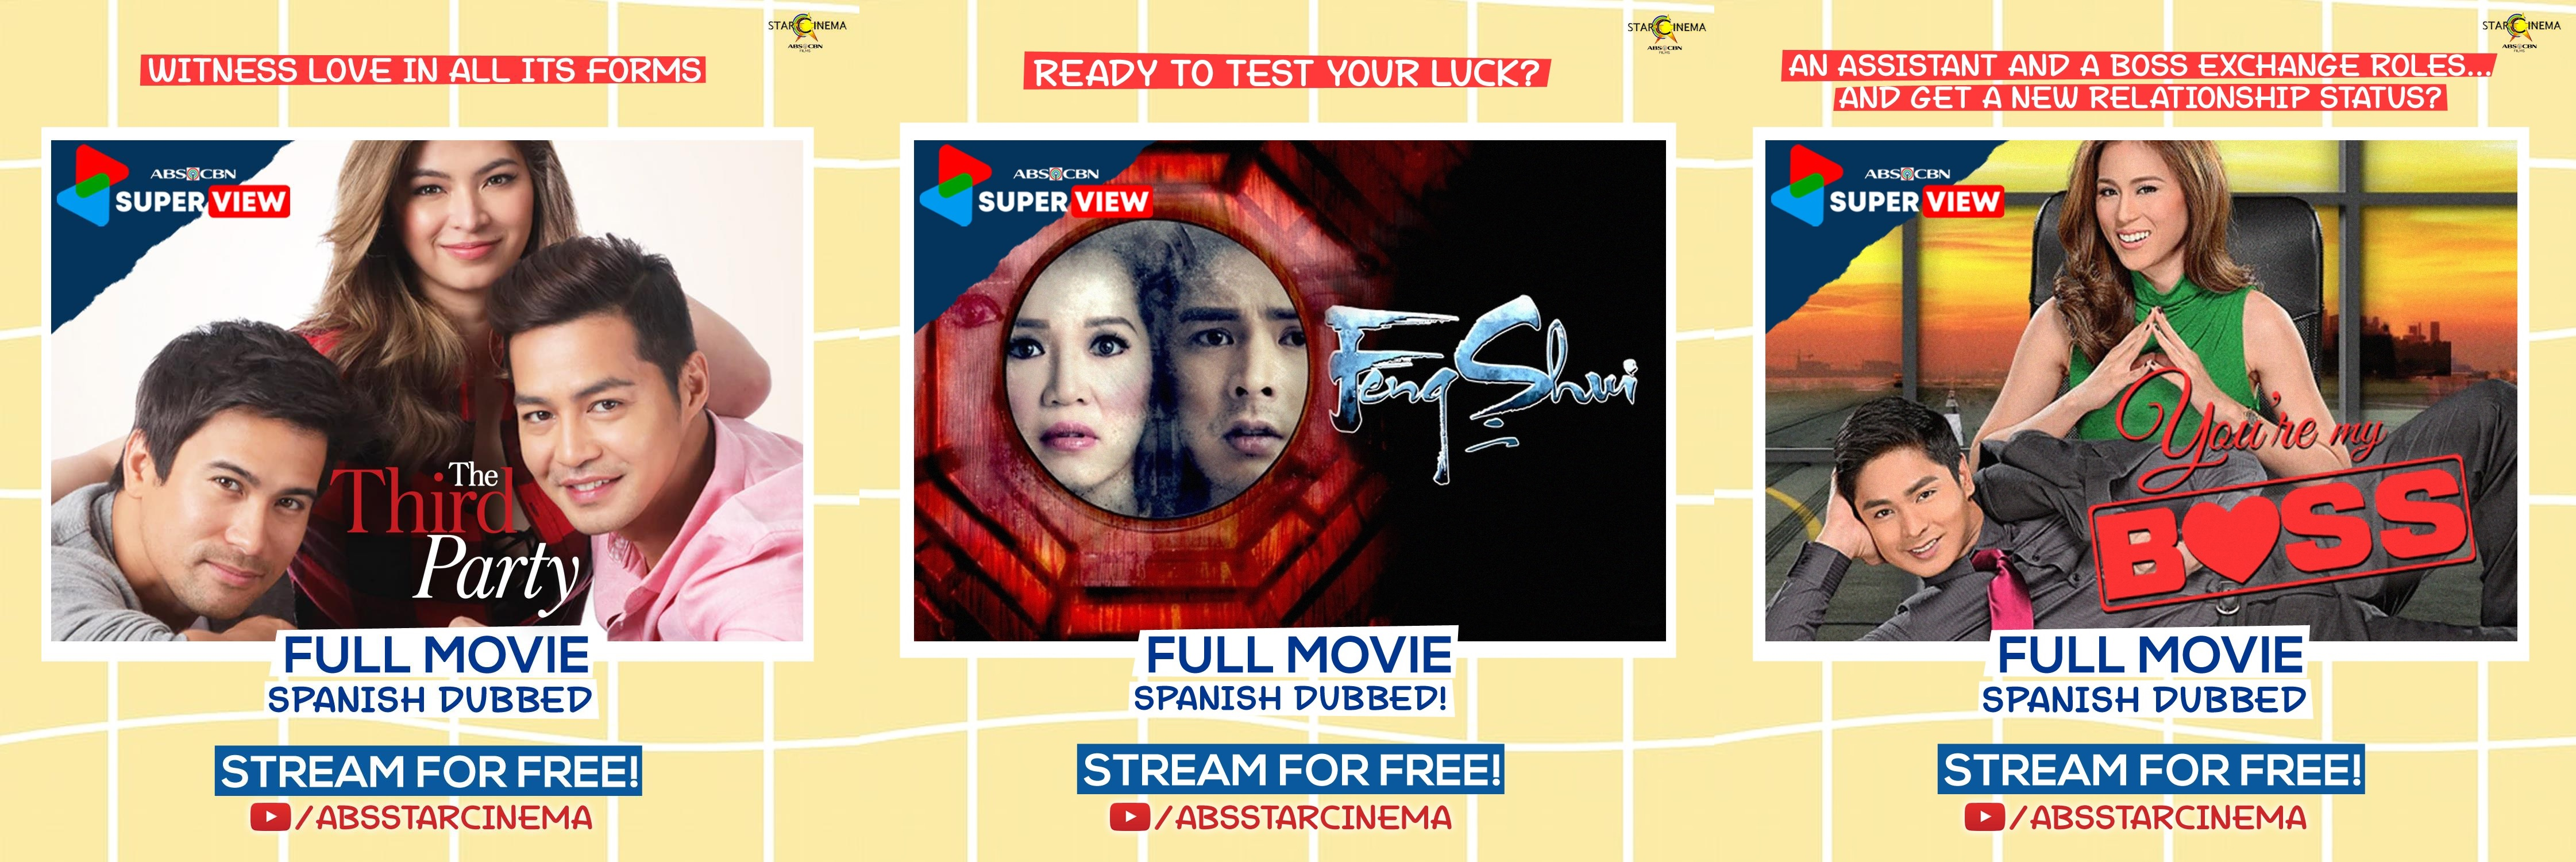 Spanish dubbed The Third Party, Feng Shui 2, and You're My Boss on Star Cinema;s YouTube channel